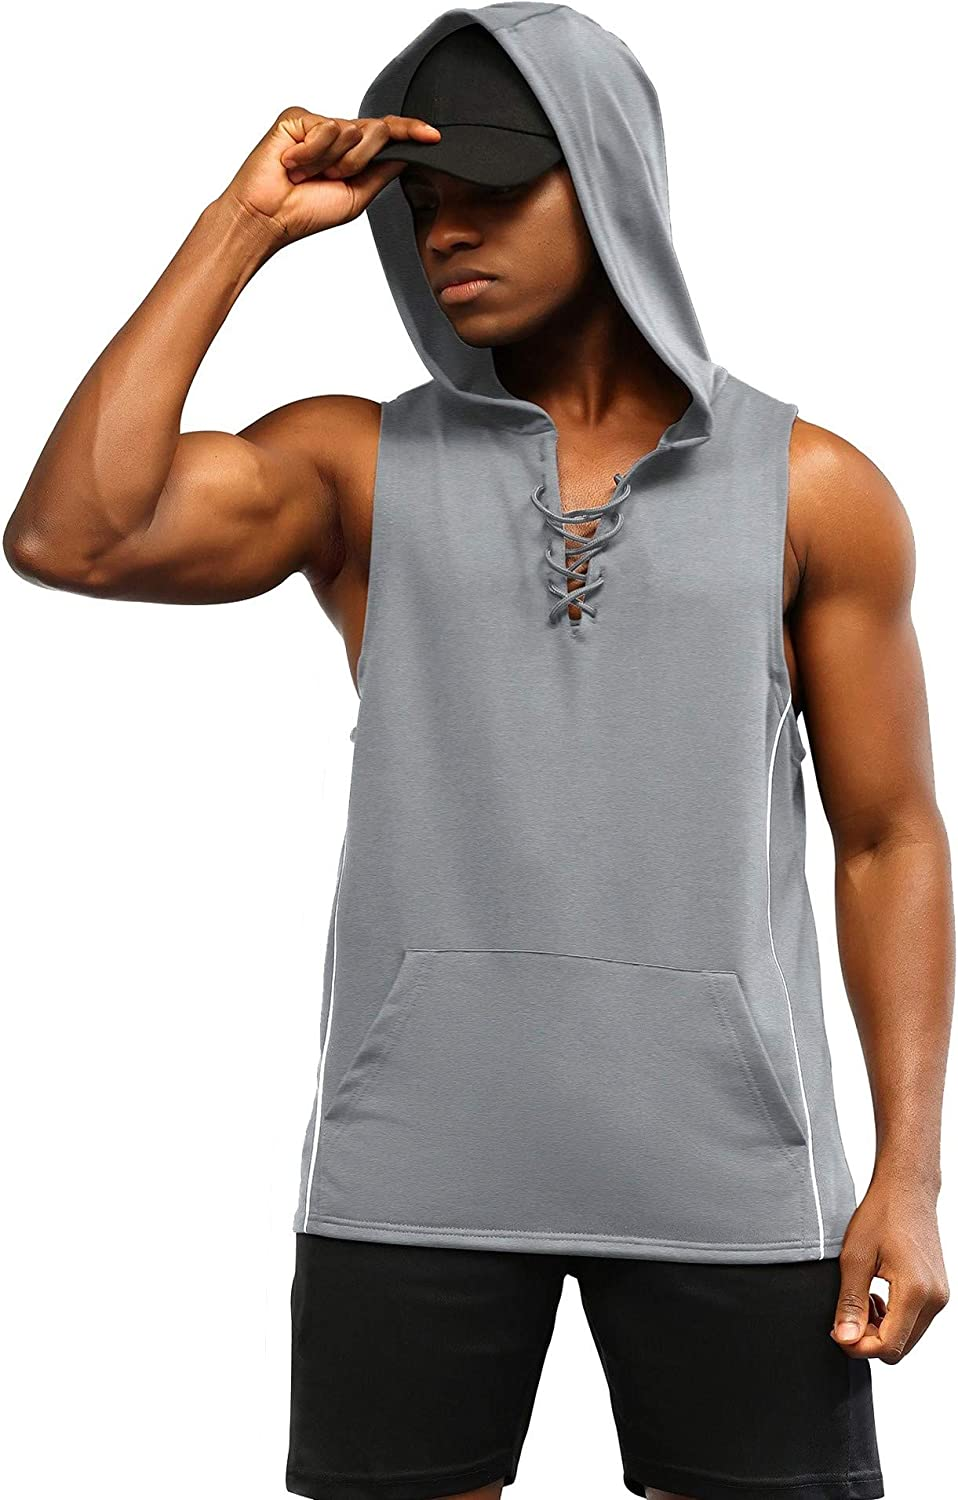 Special Campaign poriff Dedication Men's Workout Hooded Tank Tops Sh Gym Lacing T Sleeveless